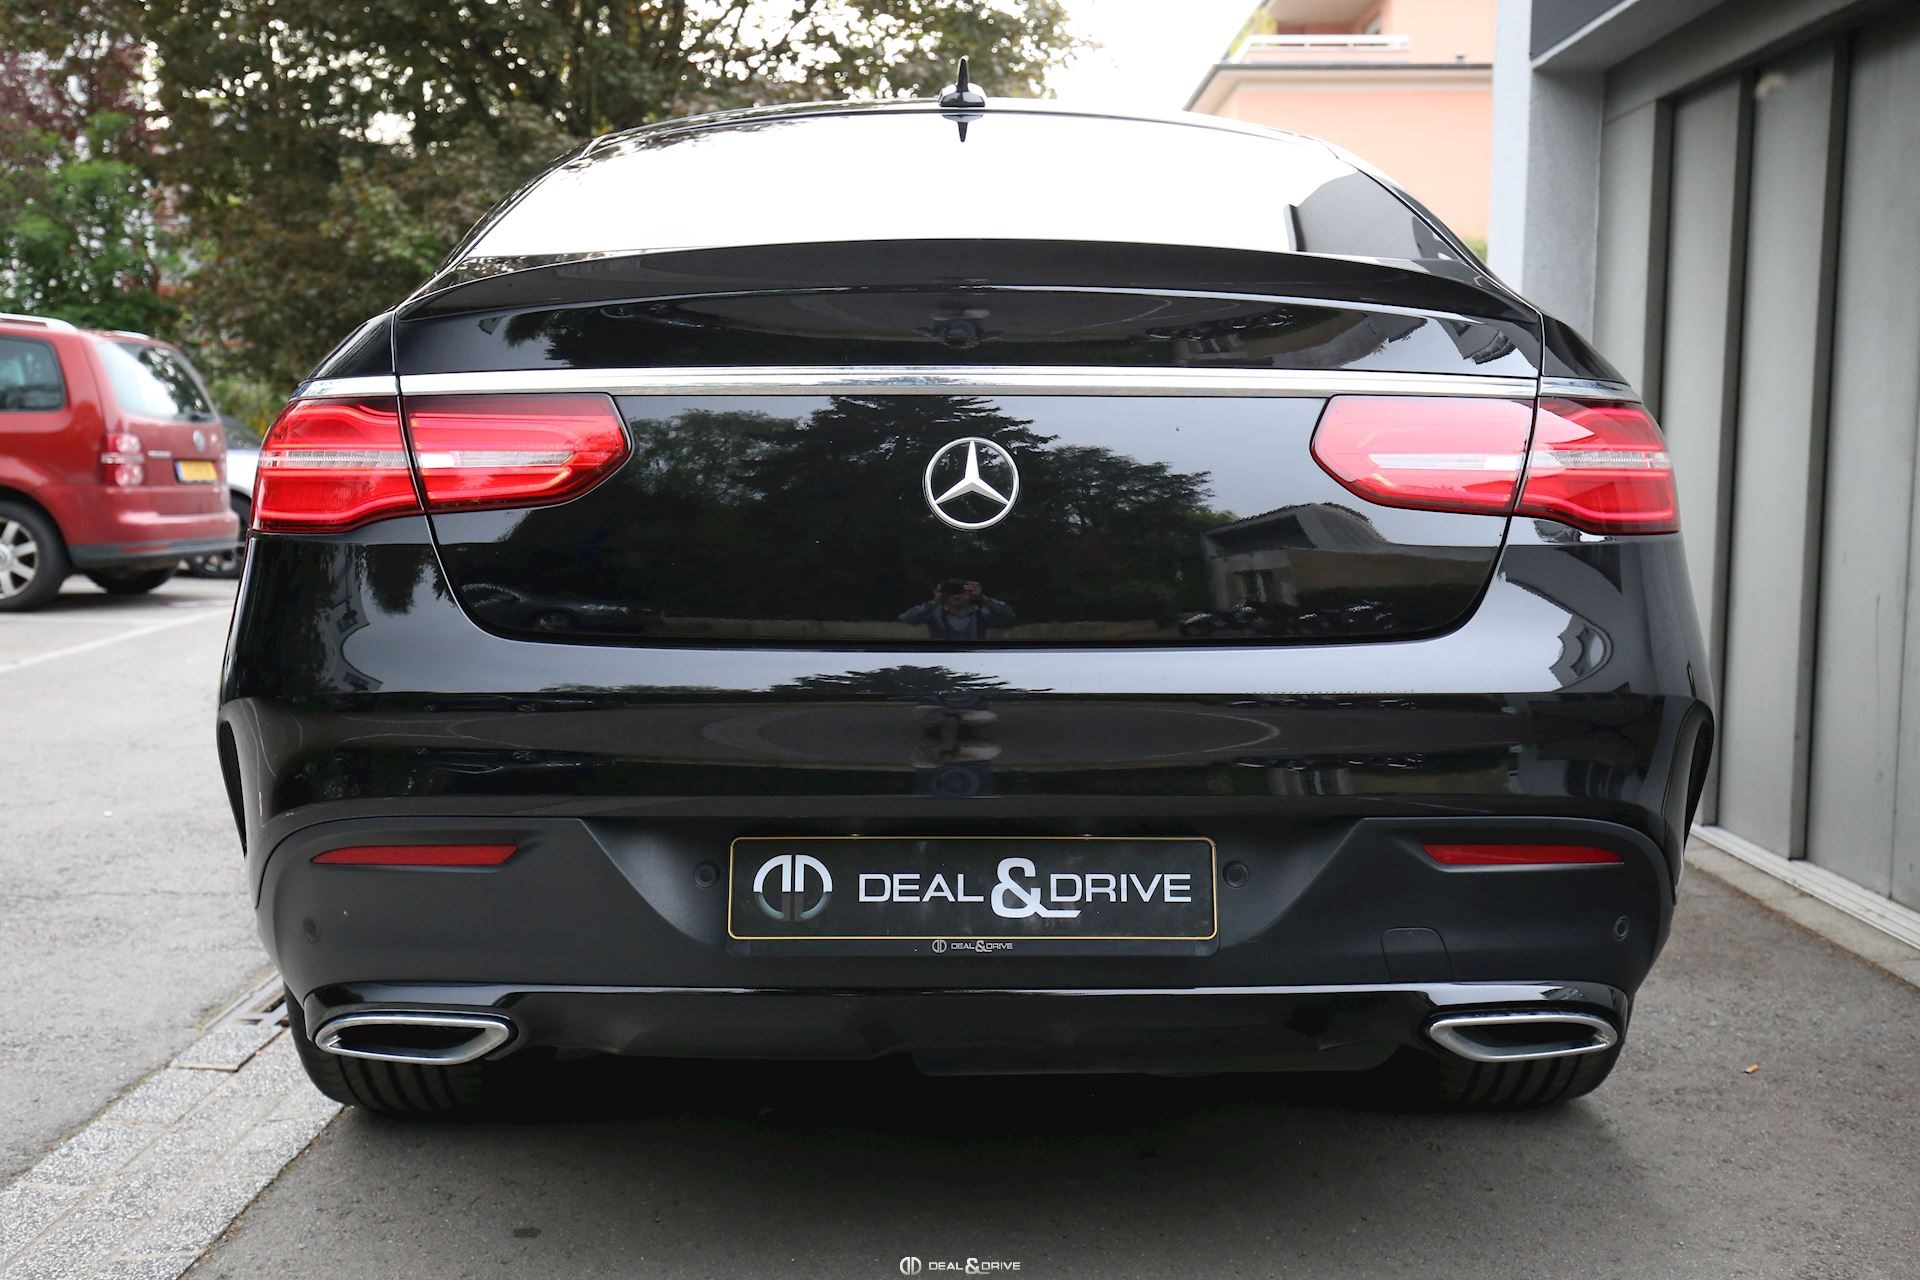 MERCEDES GLE 350 d Coupe Deal & Drive